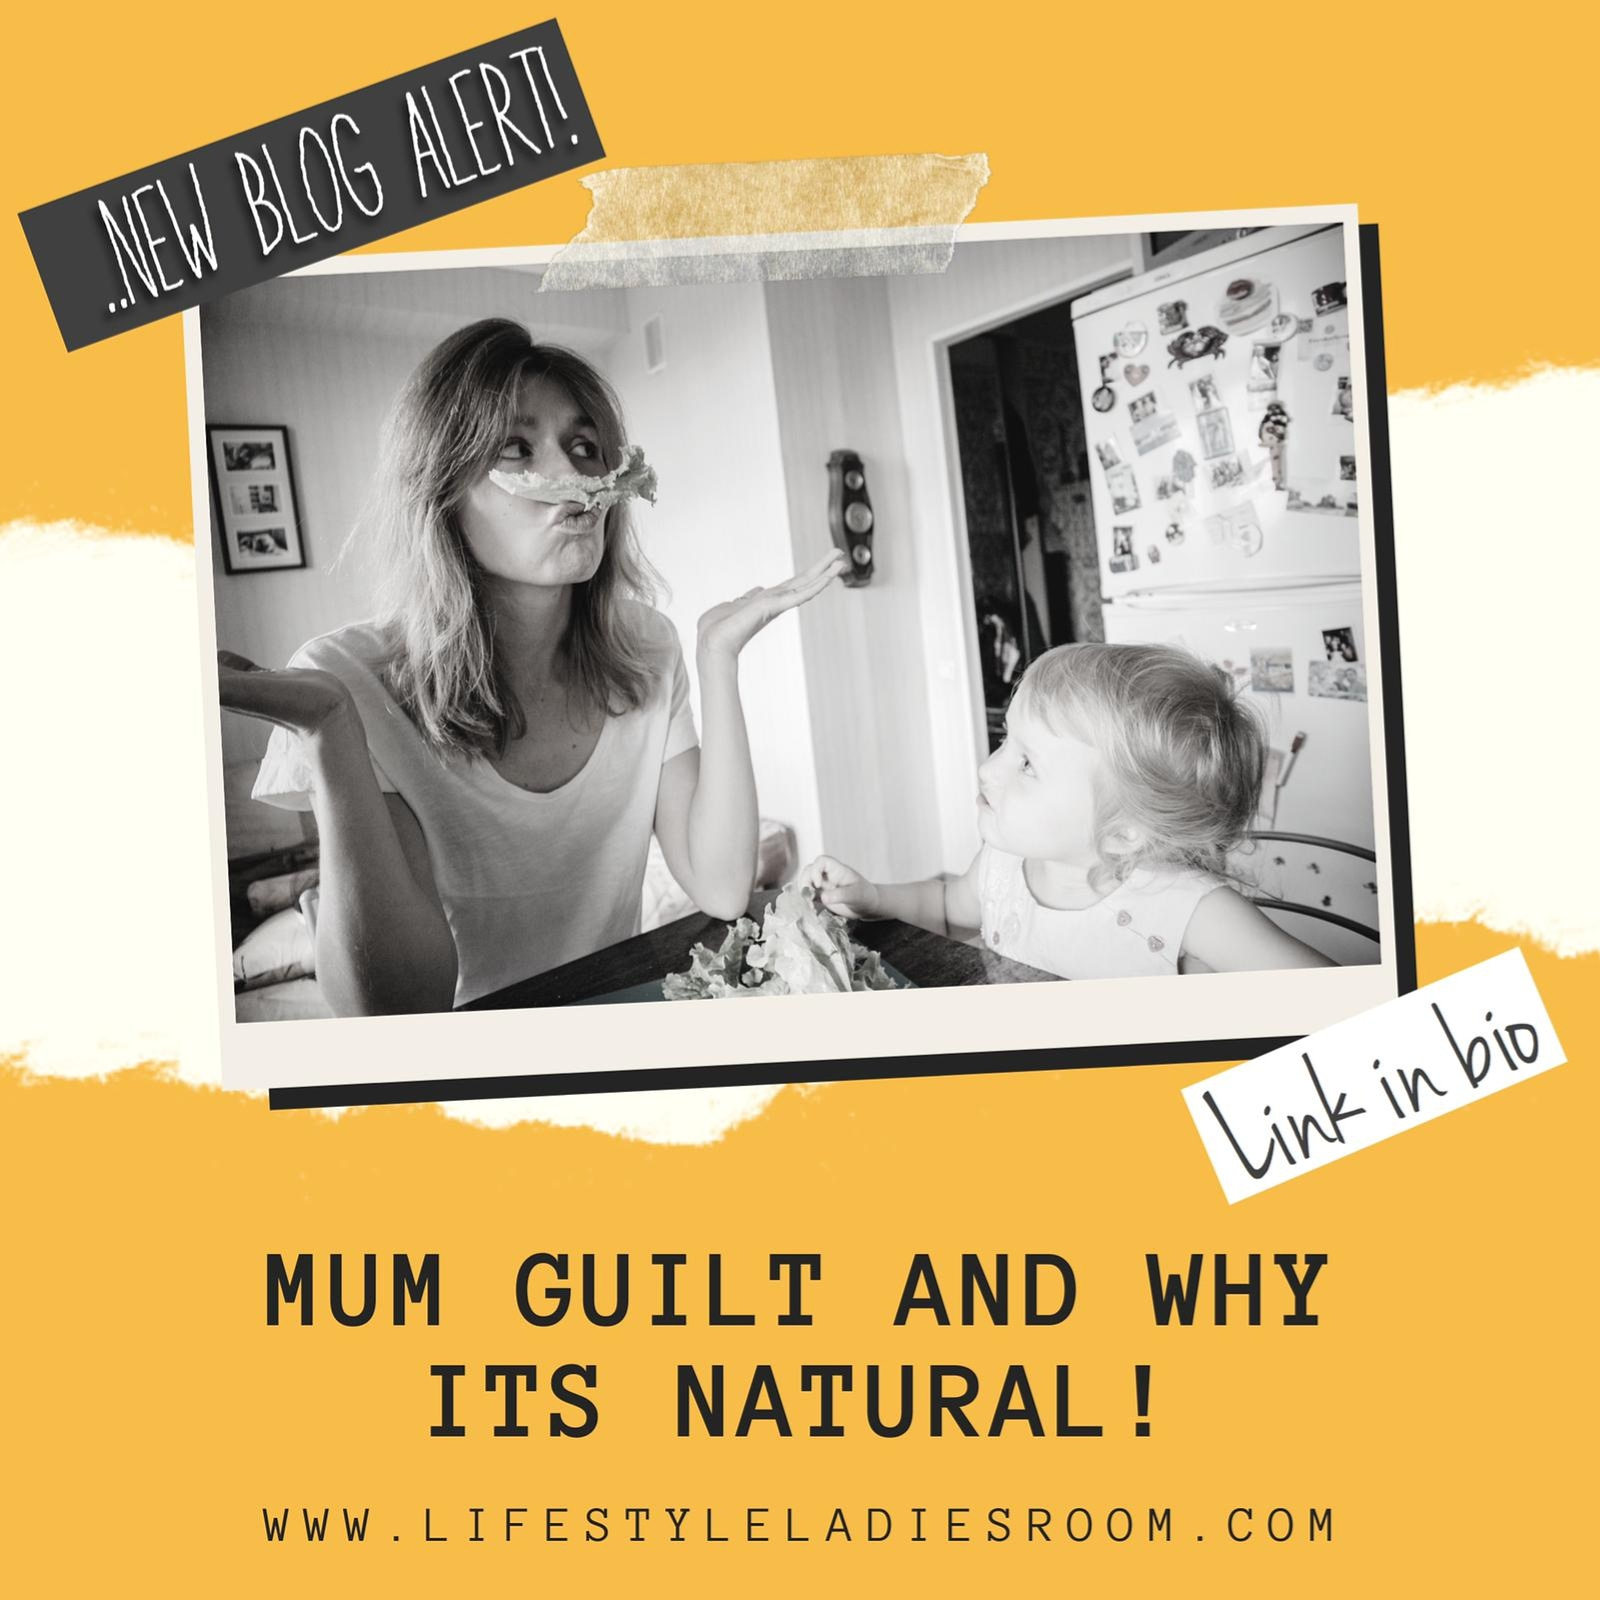 Mum Guilt and Why its Natural